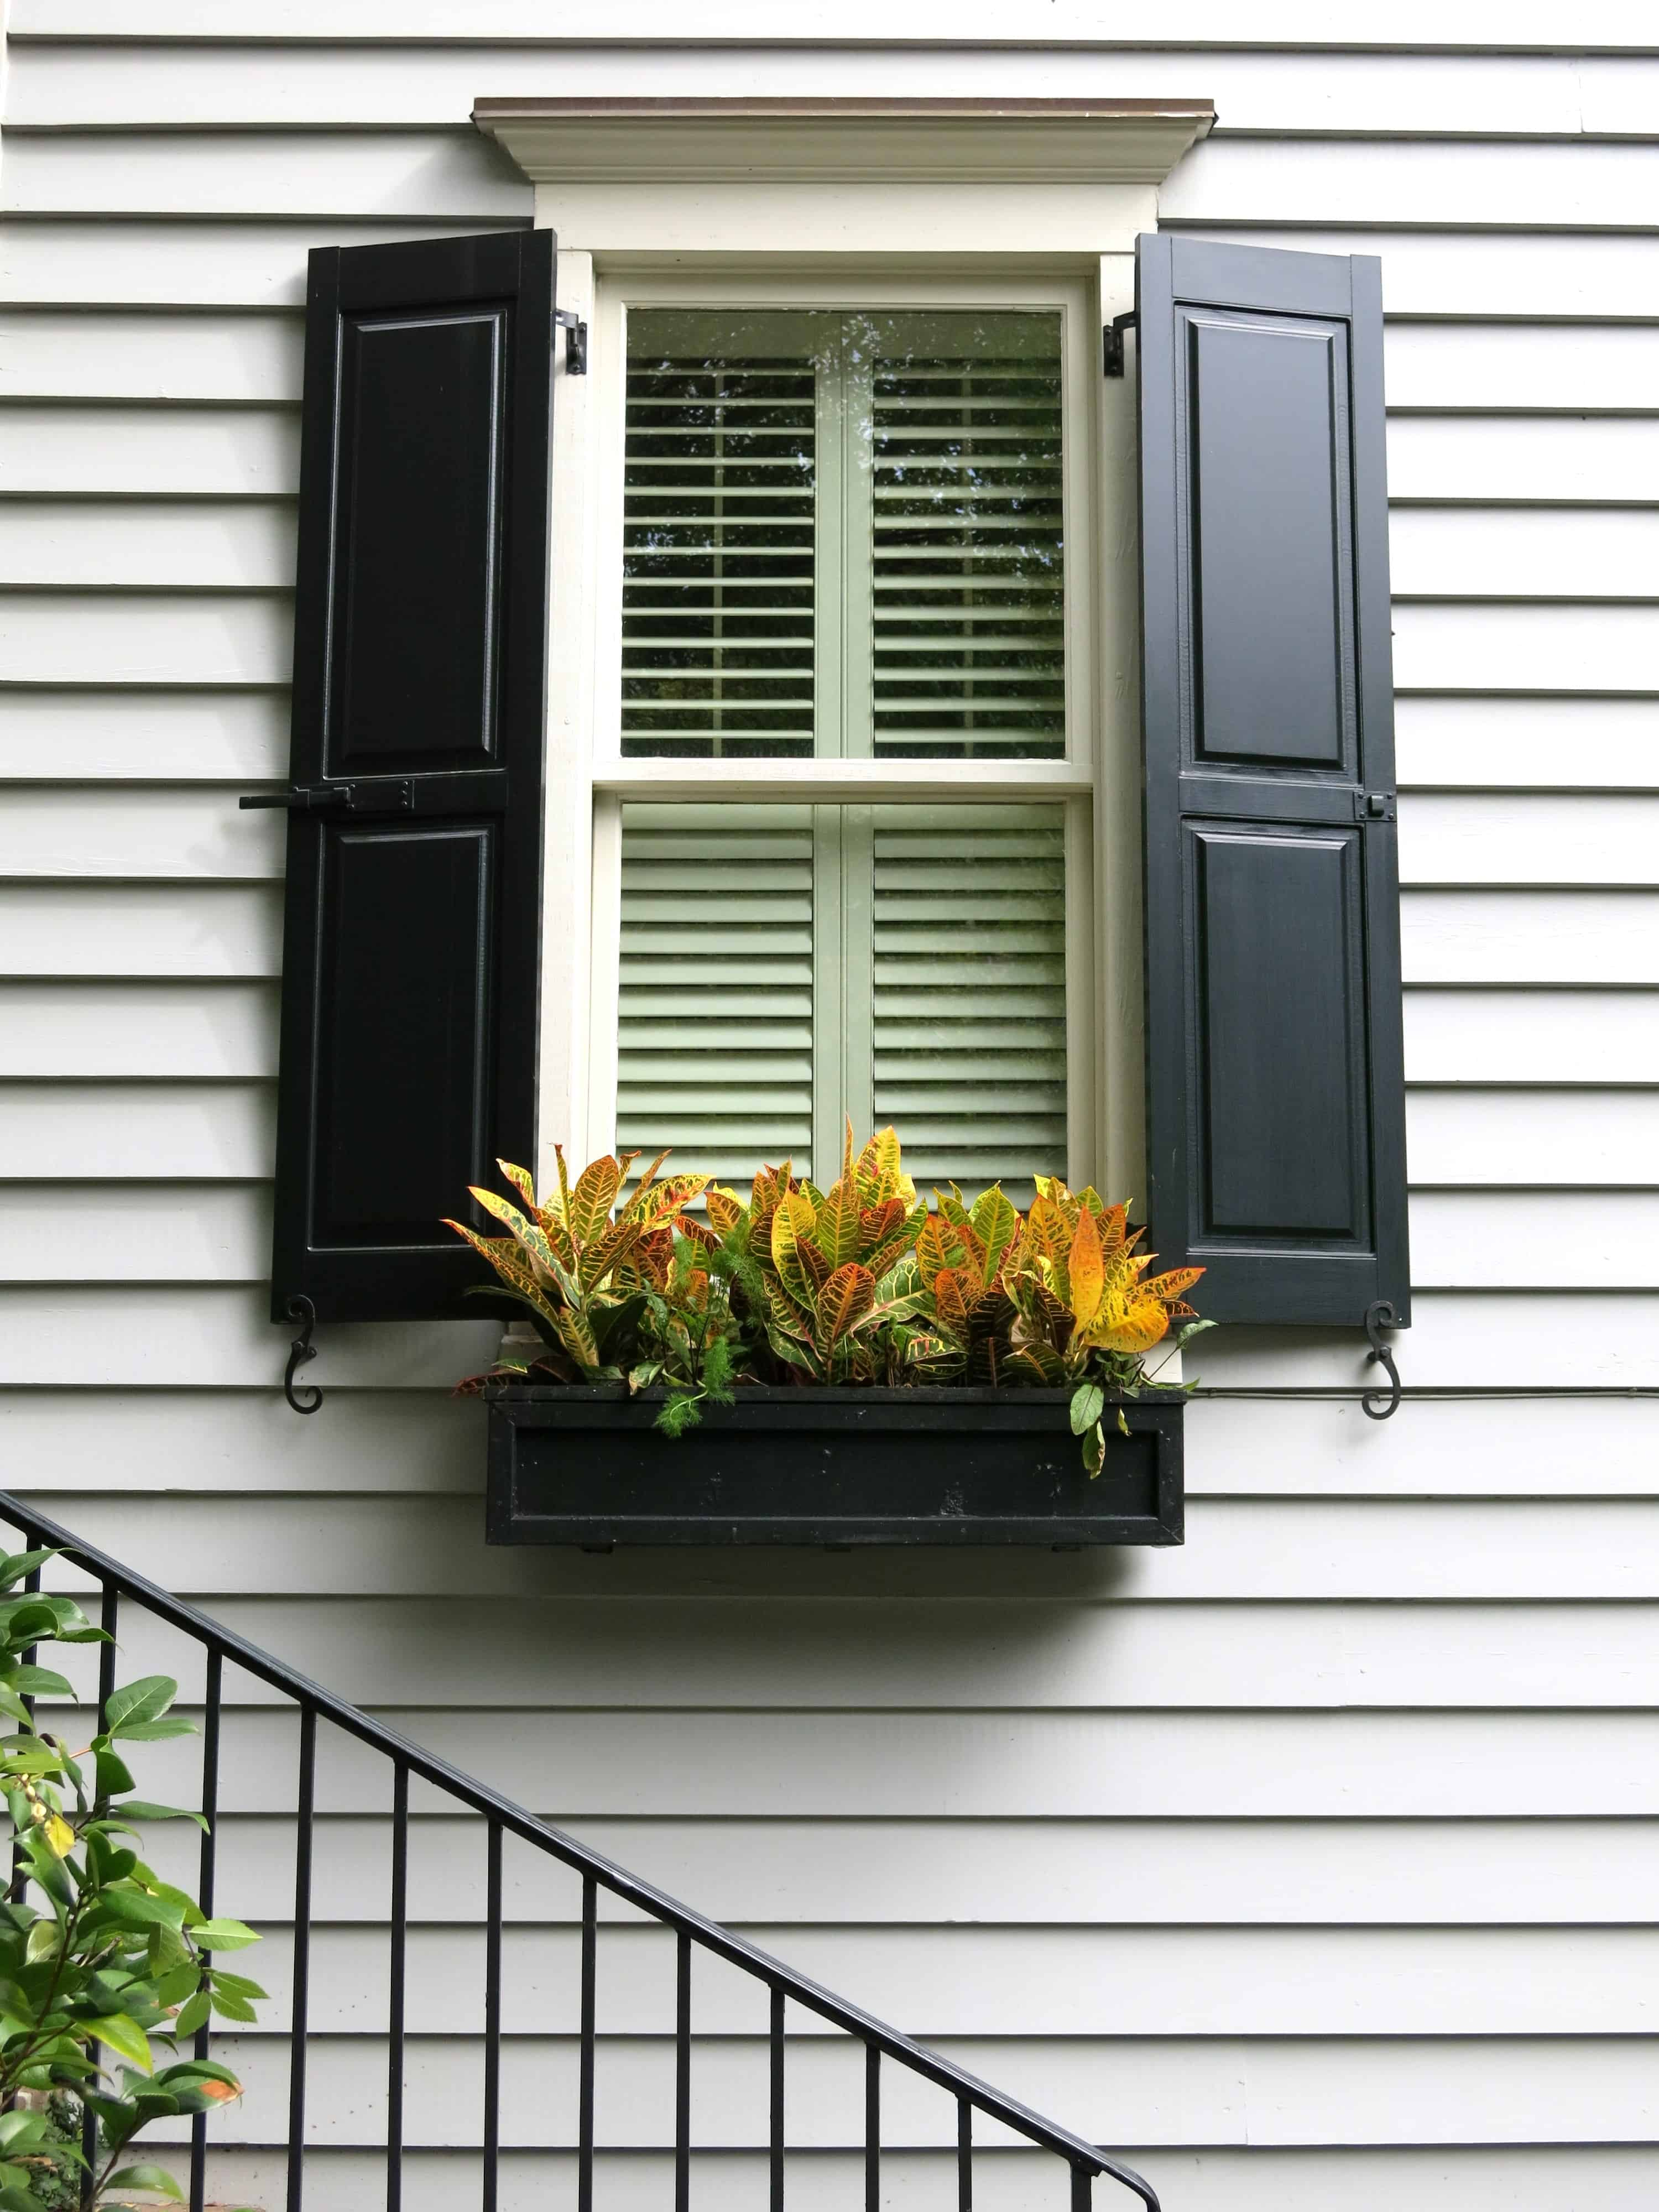 Curb appeal: Add flower boxes; opt for contrast colors to create a dramatic effect. Window box, black shutters, and wrought-iron railing, Wraggborough Lane, Charleston, SC